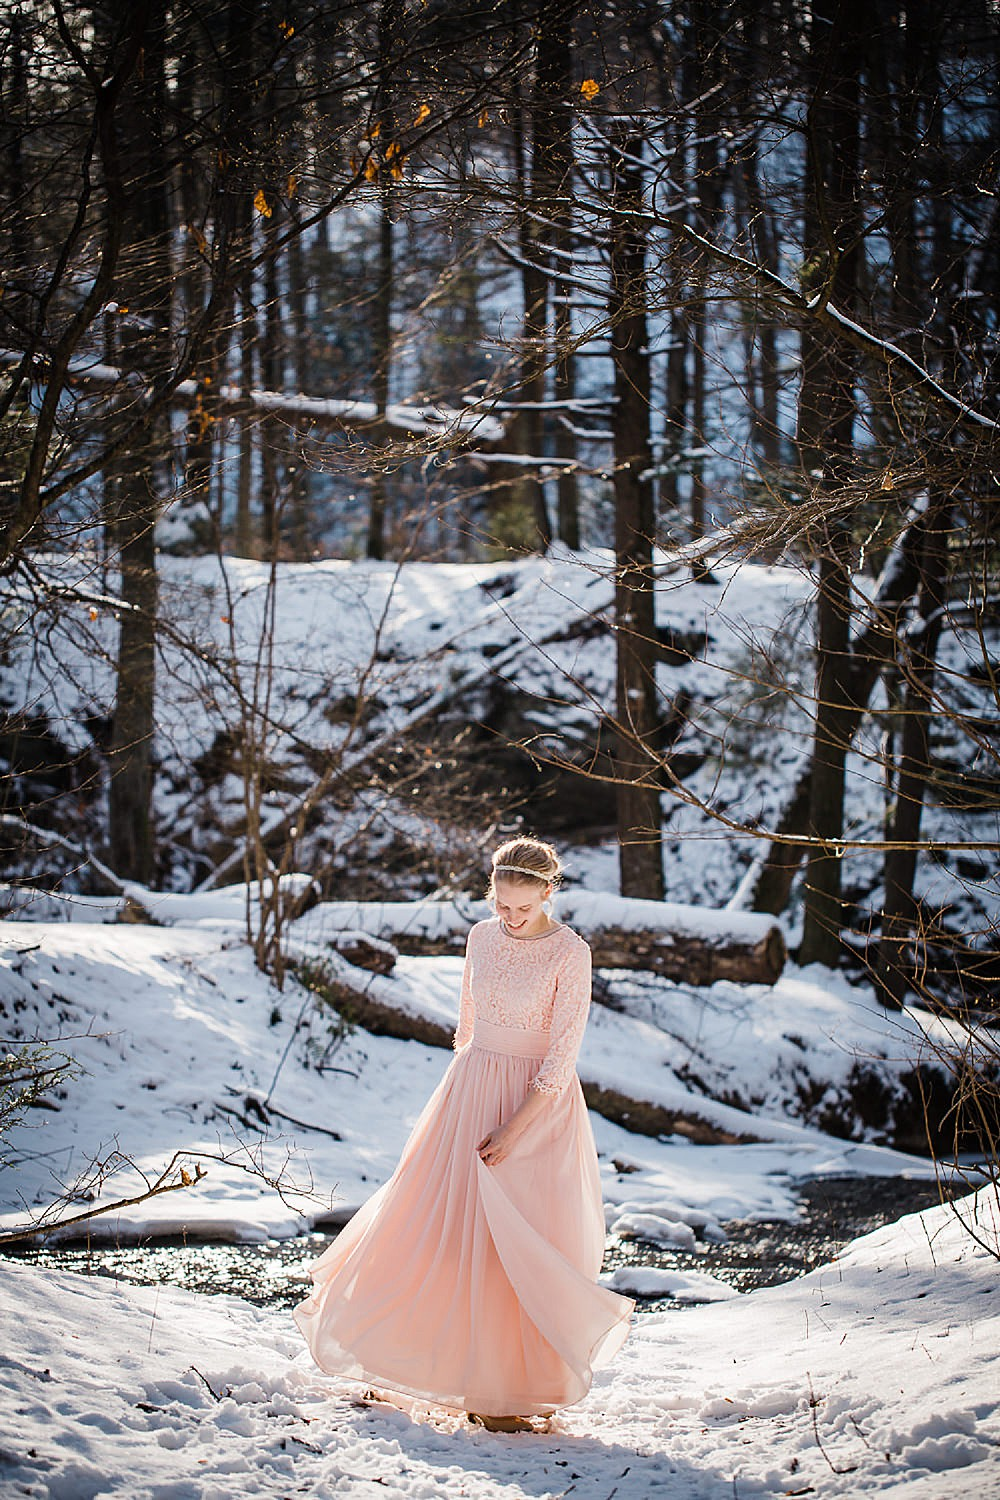 Photo of a young blonde woman in a long light pink gown twirling in a wintery forest.